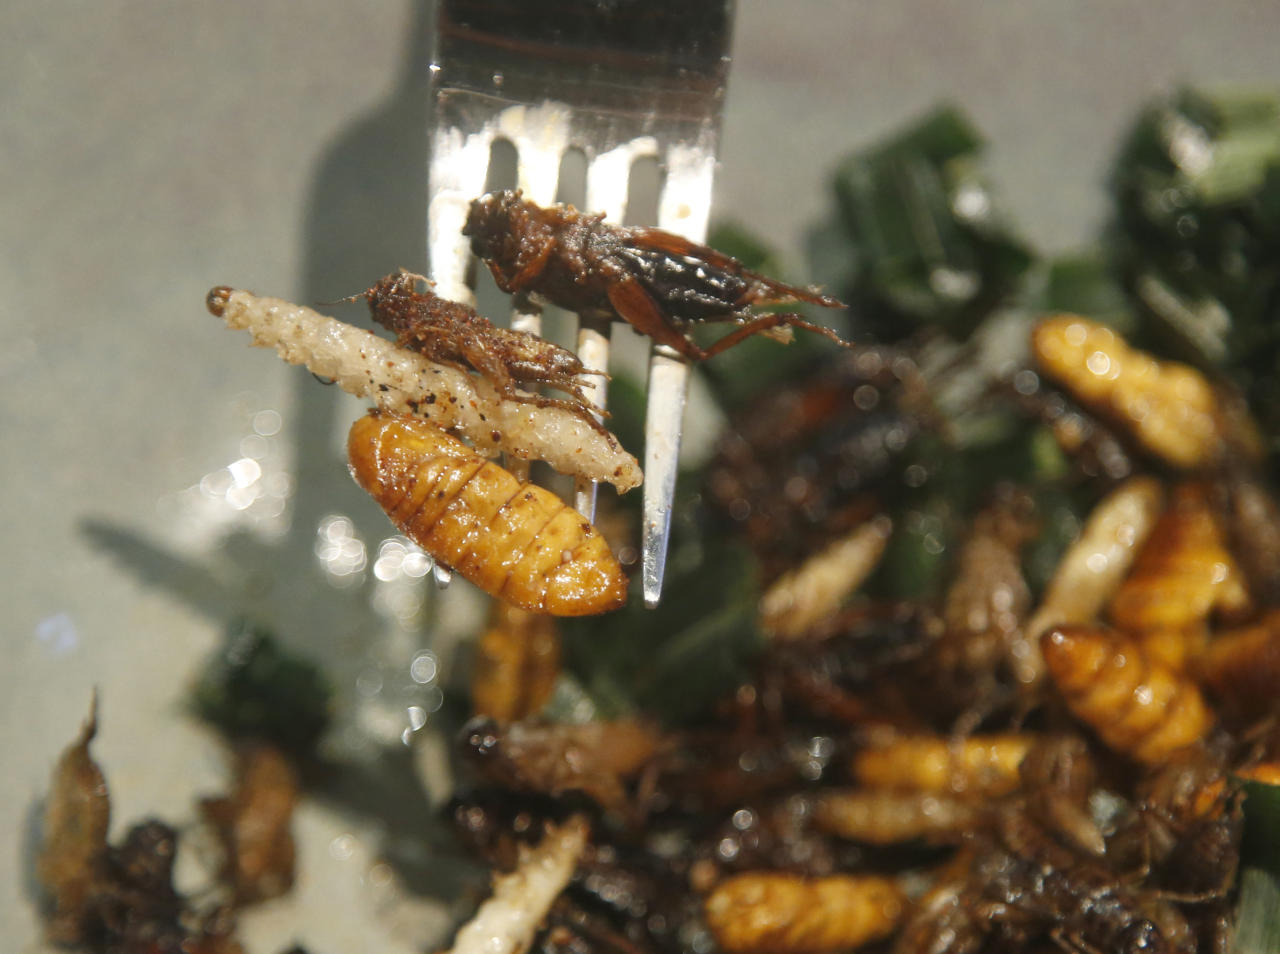 FIXES TYPOS - In this Tuesday, Sept. 12, 2017, photo, a bamboo worm, silkworm and fried crickets are displayed on a fork before being eaten at Insects in the Backyard restaurant, in Bangkok, Thailand. Tucking into insects is nothing new in Thailand, where street vendors pushing carts of fried crickets and buttery silkworms have long fed locals and adventurous tourists alike. But bugs are now fine-dining at the Bangkok bistro aiming to revolutionize views of nature's least-loved creatures and what you can do with them. (AP Photo/Sakchai Lalit)